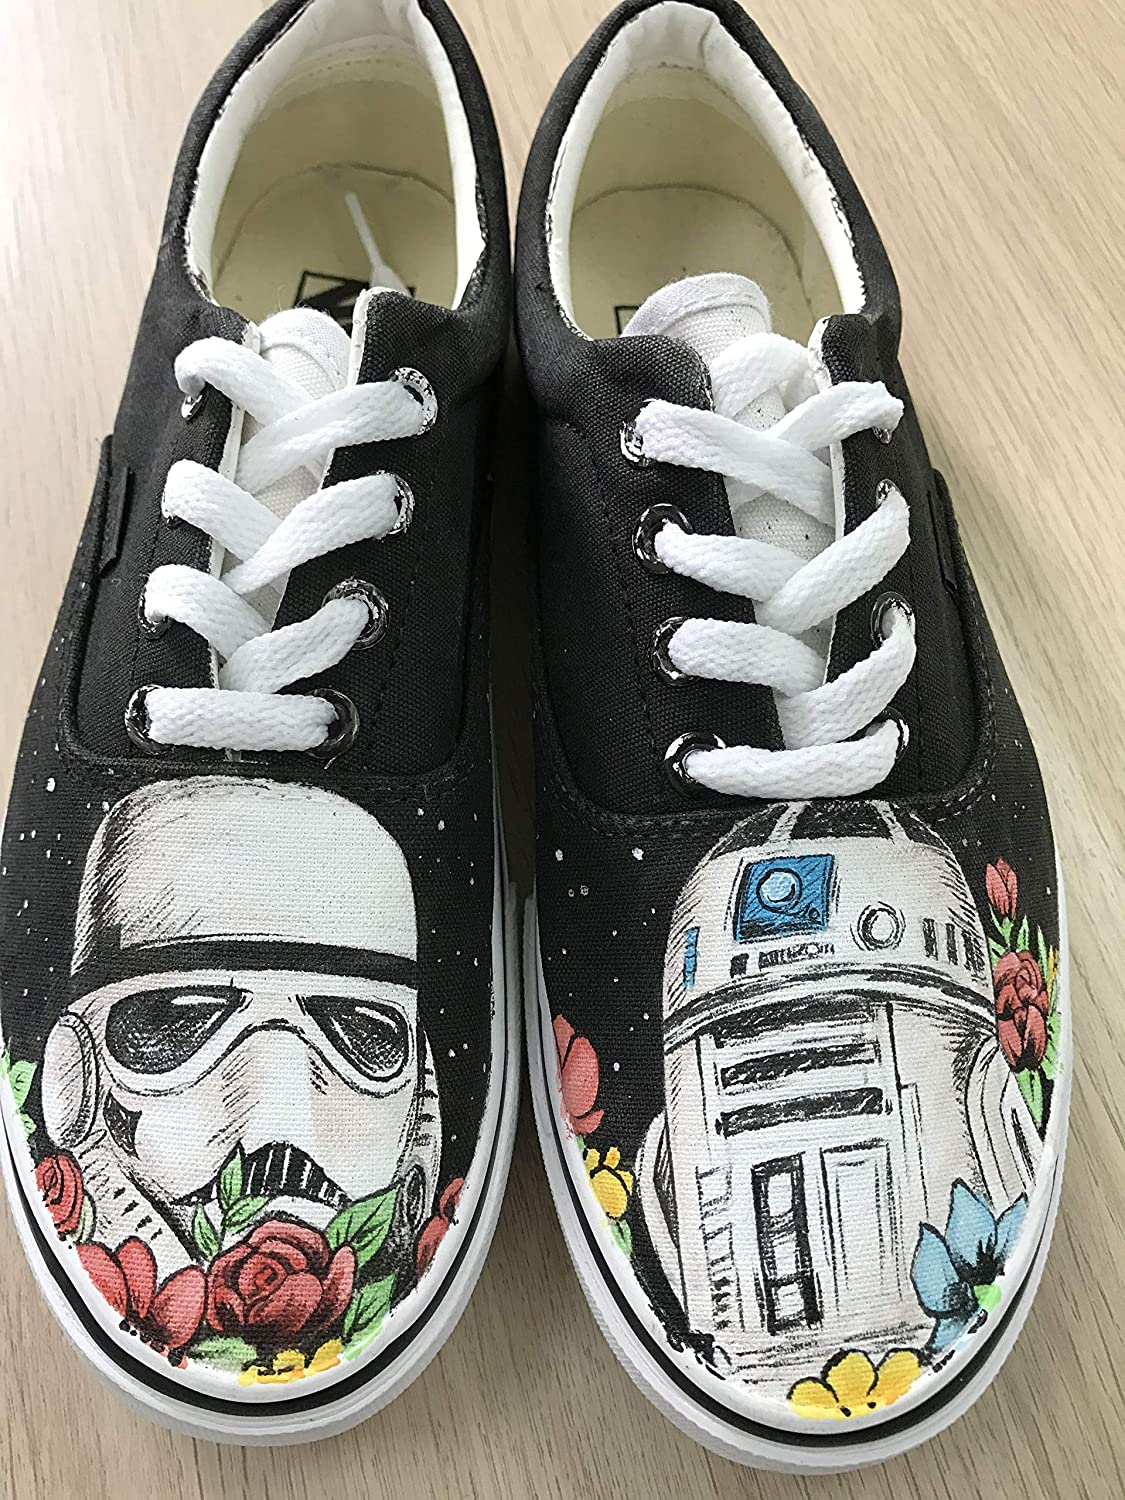 fae93c394f7c2 Amazon.com: Star Wars Custom Vans Authentic Custom Shoes Vans ...